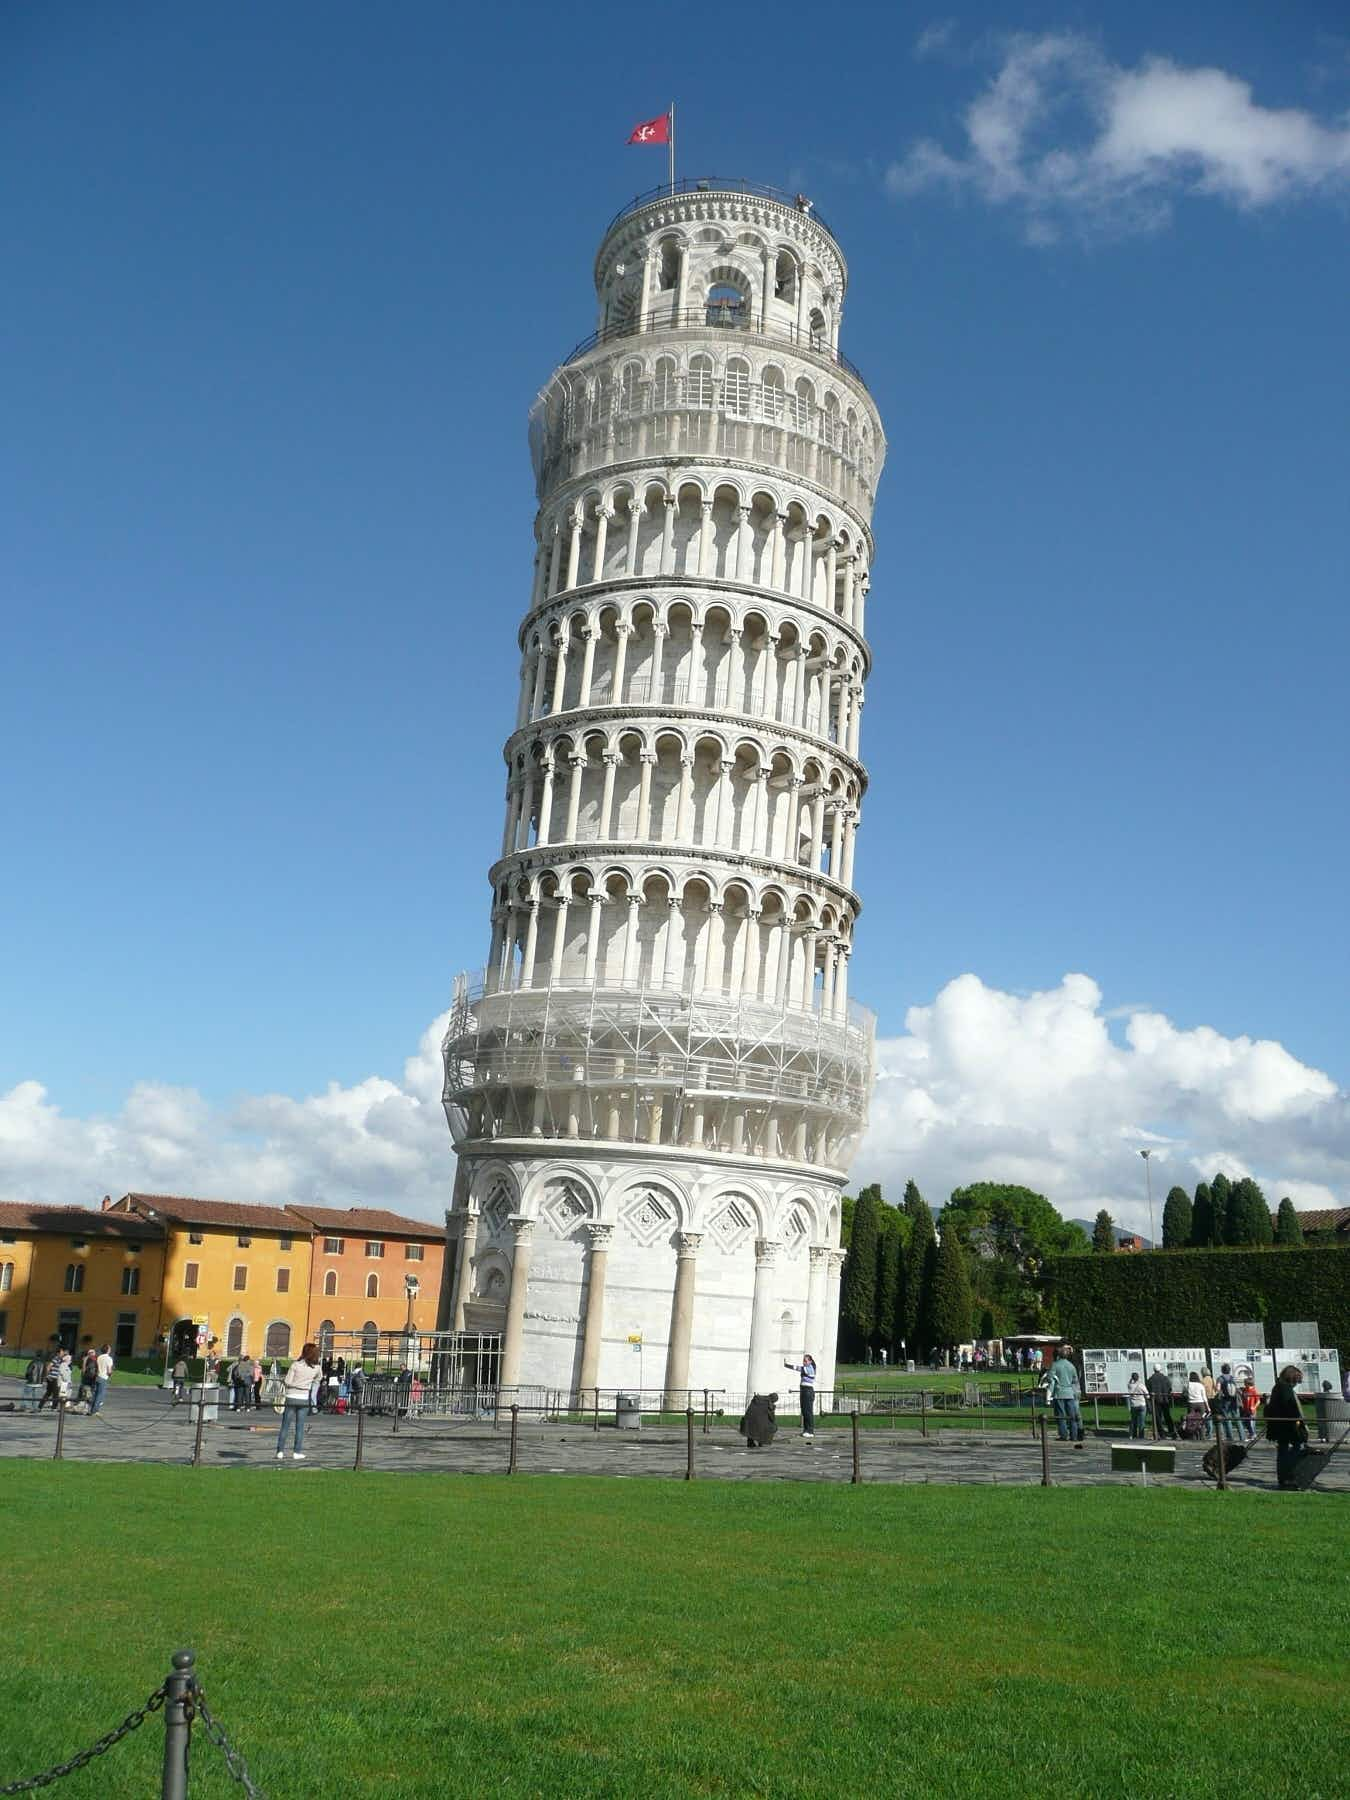 Experts discover how the Leaning Tower of Pisa has survived major earthquakes